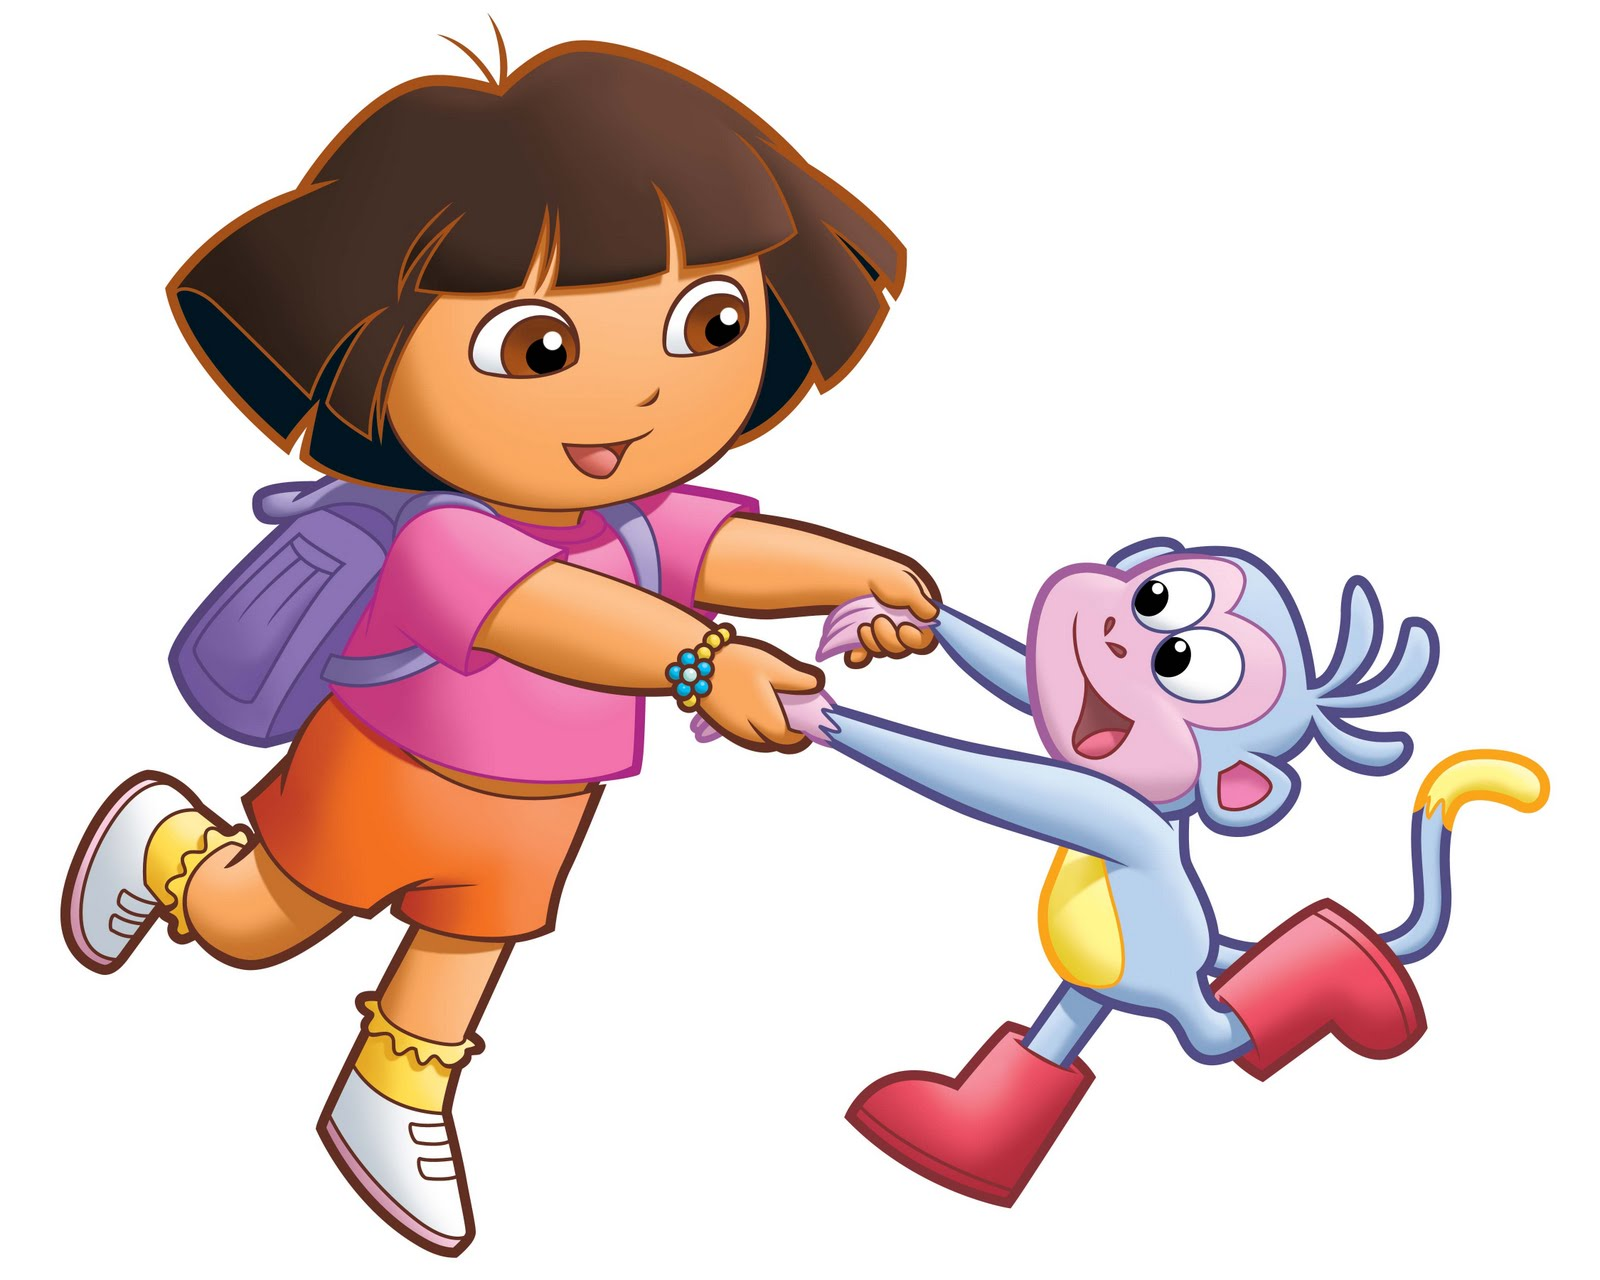 Uncategorized Dora Pictures a lot of dora pictures from your favorit show the explorer and backpack liana swinging dancing